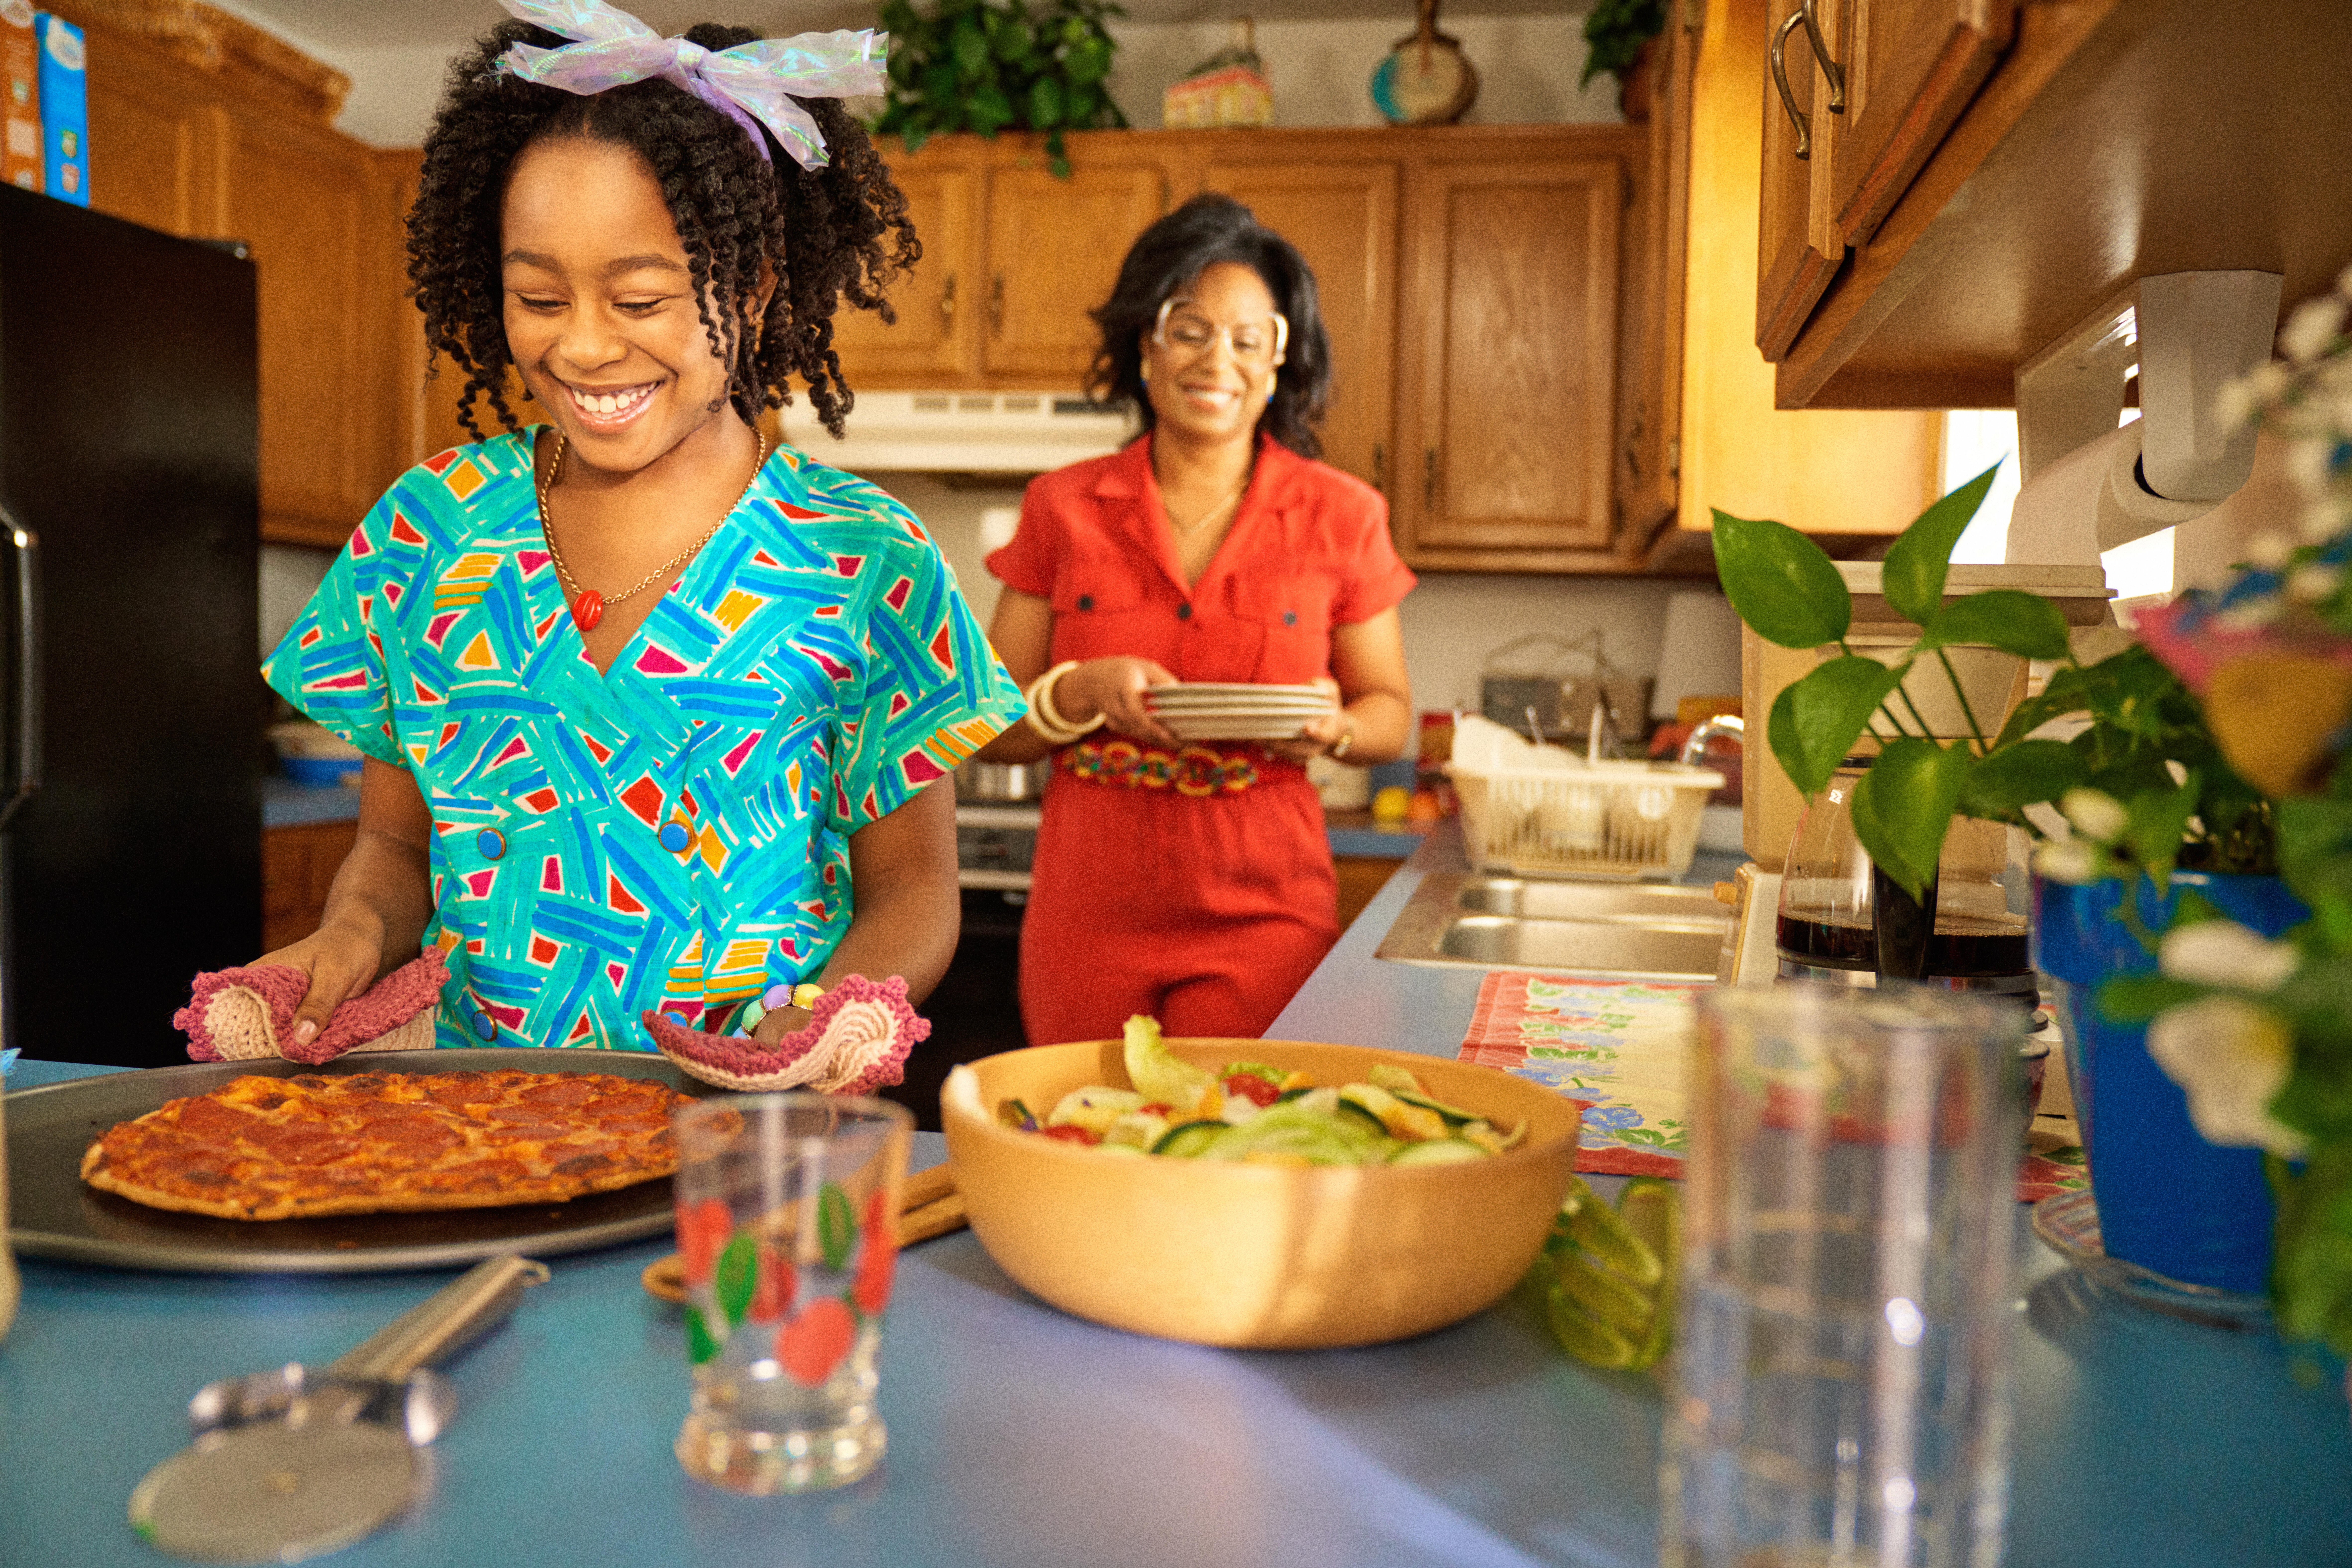 Mom and daughter cooking dinner